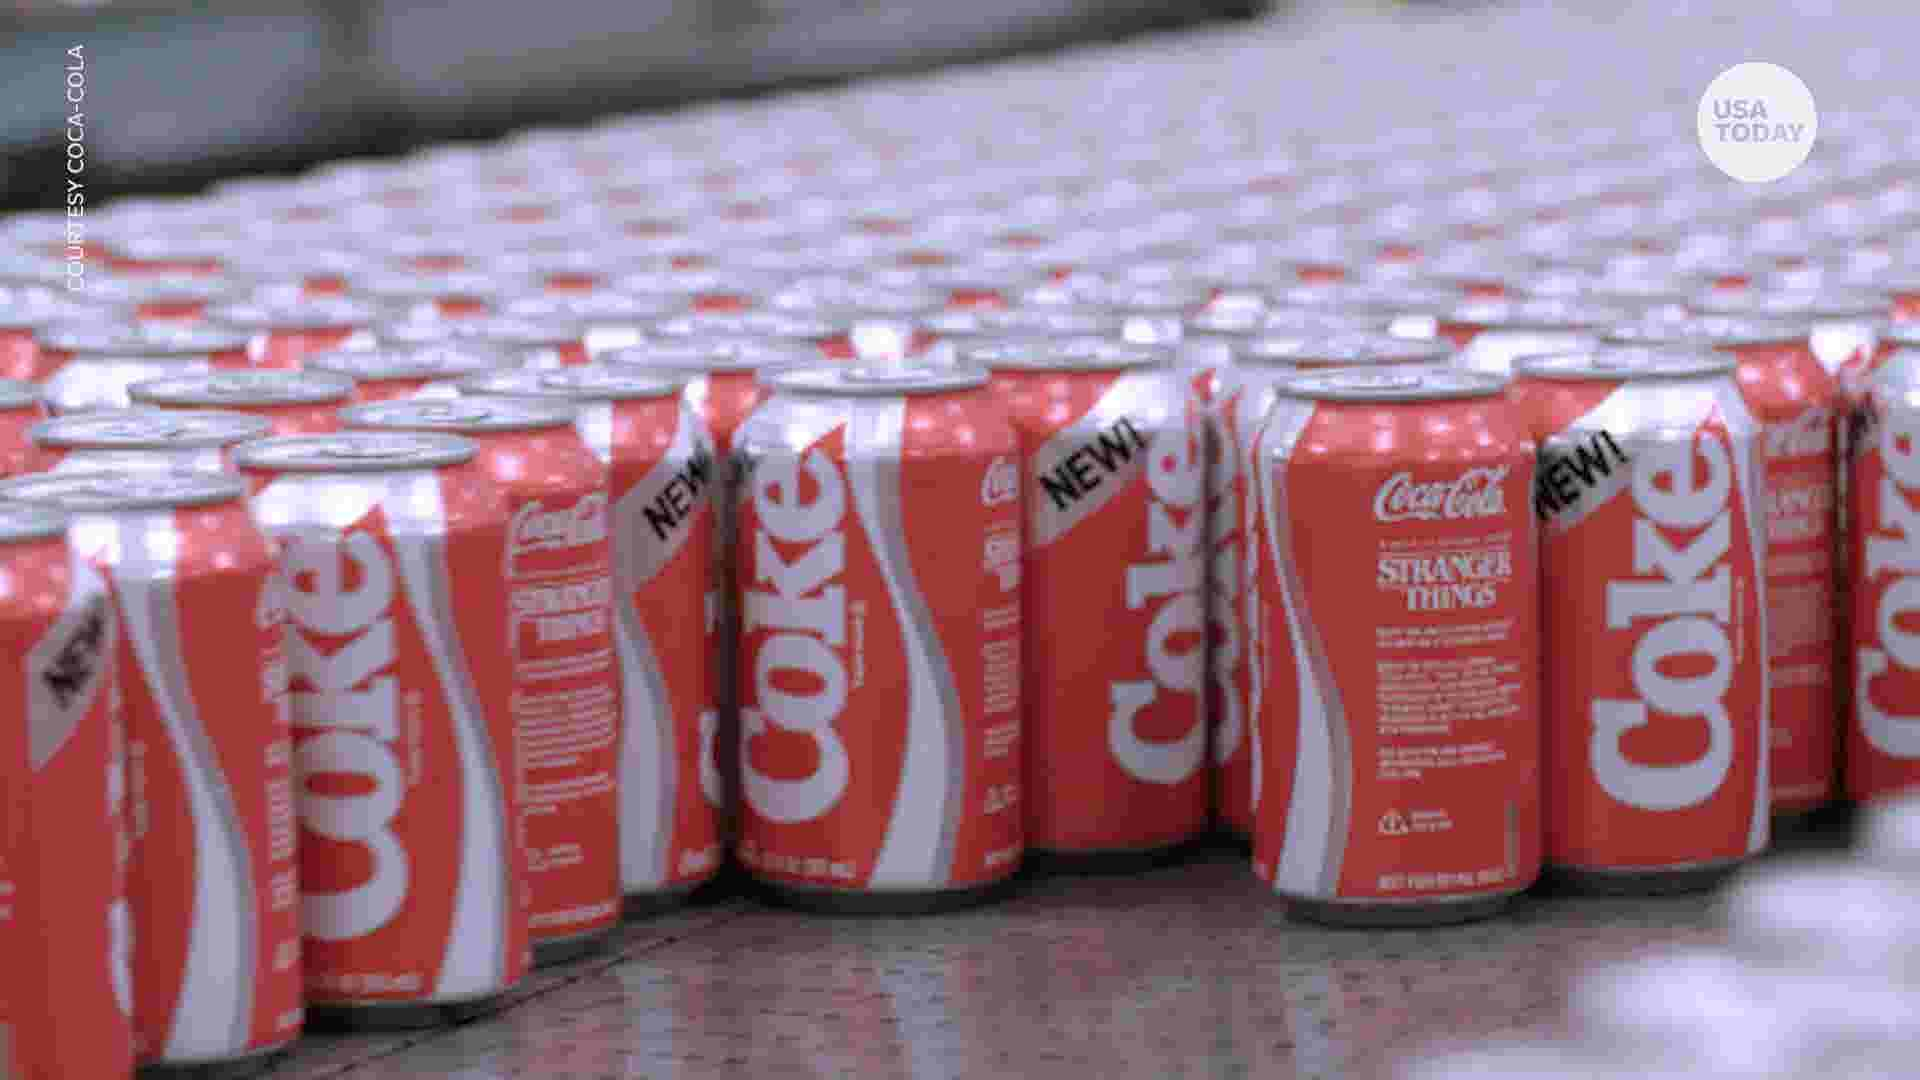 New Coke is back for limited time thanks to 'Stranger Things'